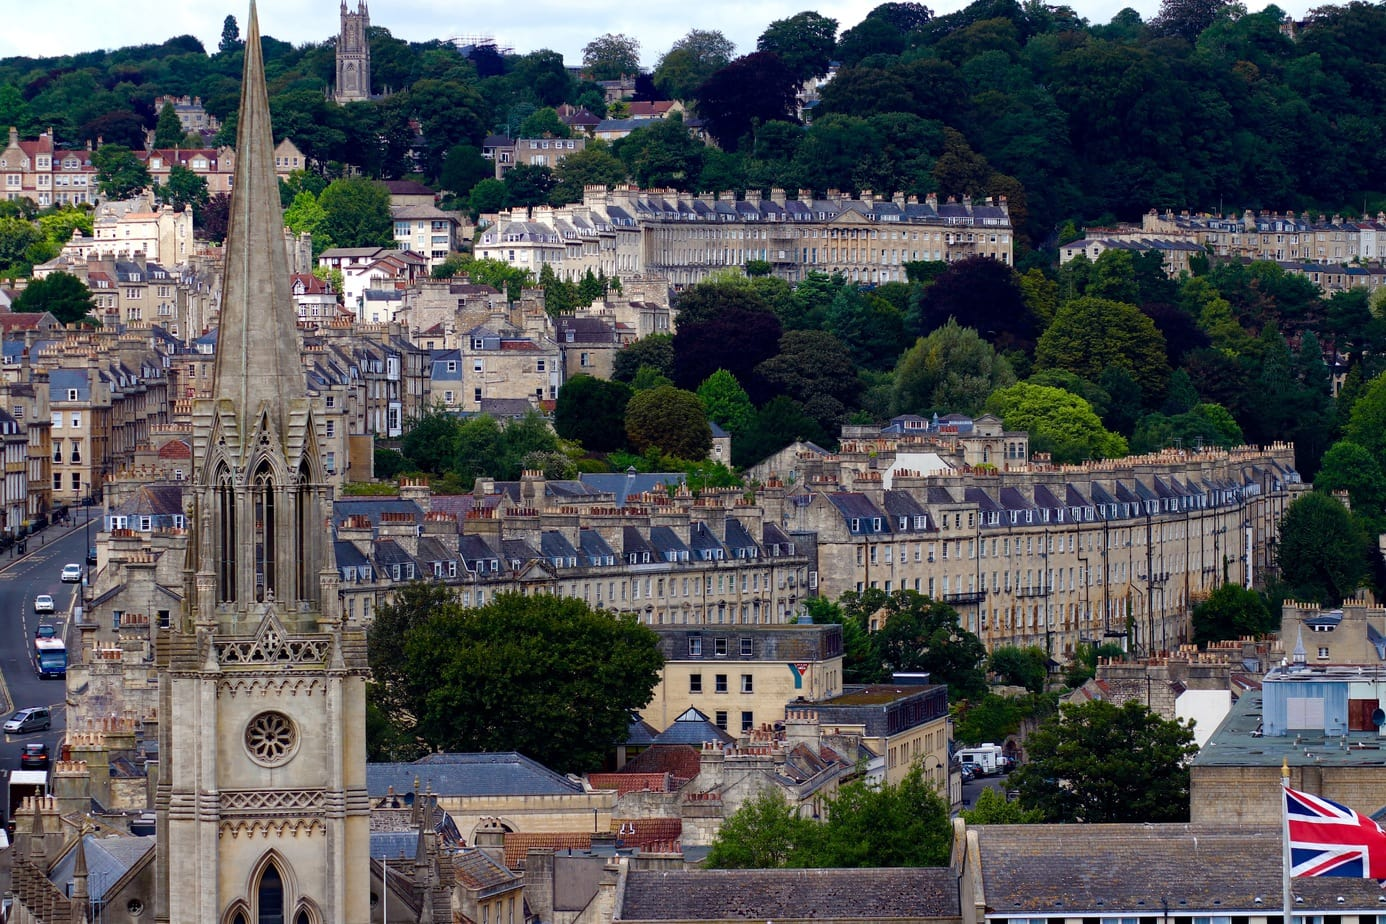 Views over Bath, UK